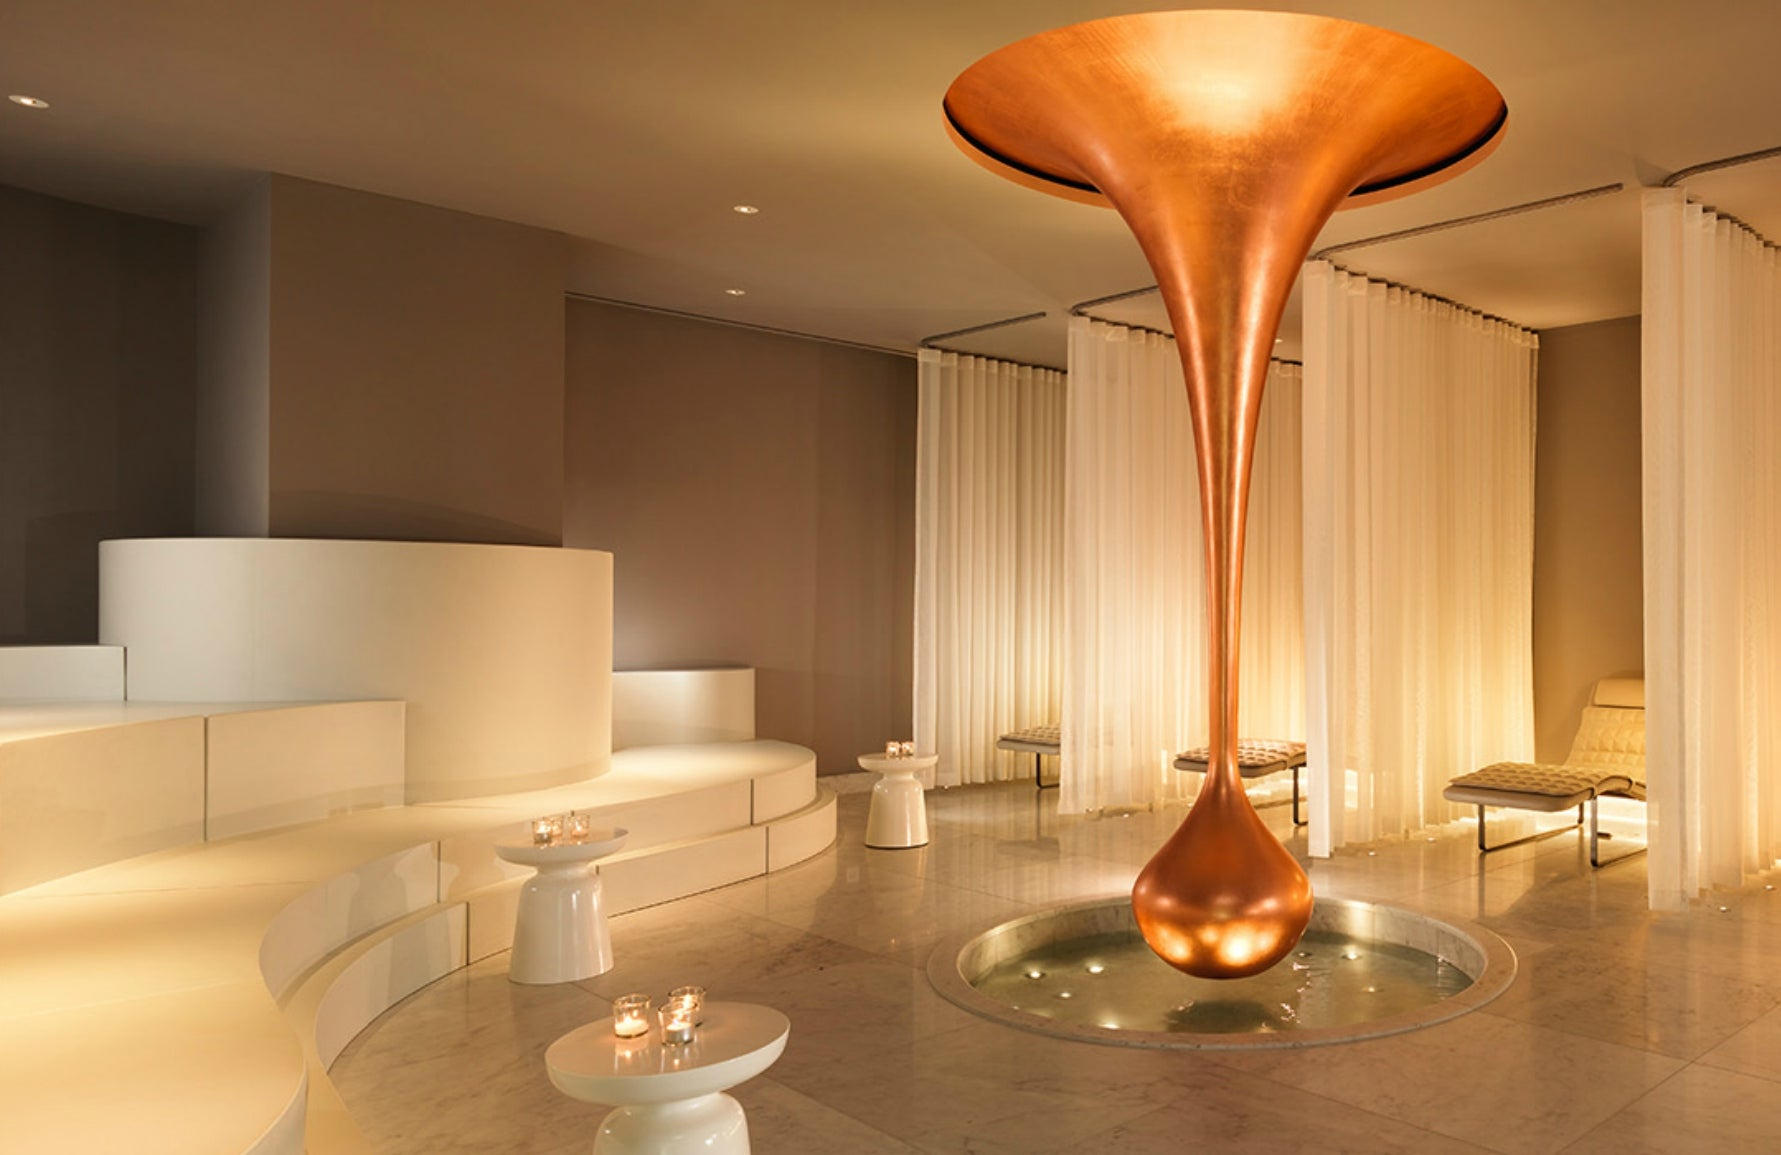 Best Spa In London | agua London at the Sea Containers London | London Spa Hotel | Read more in The Luxurist at LuxDeco.com